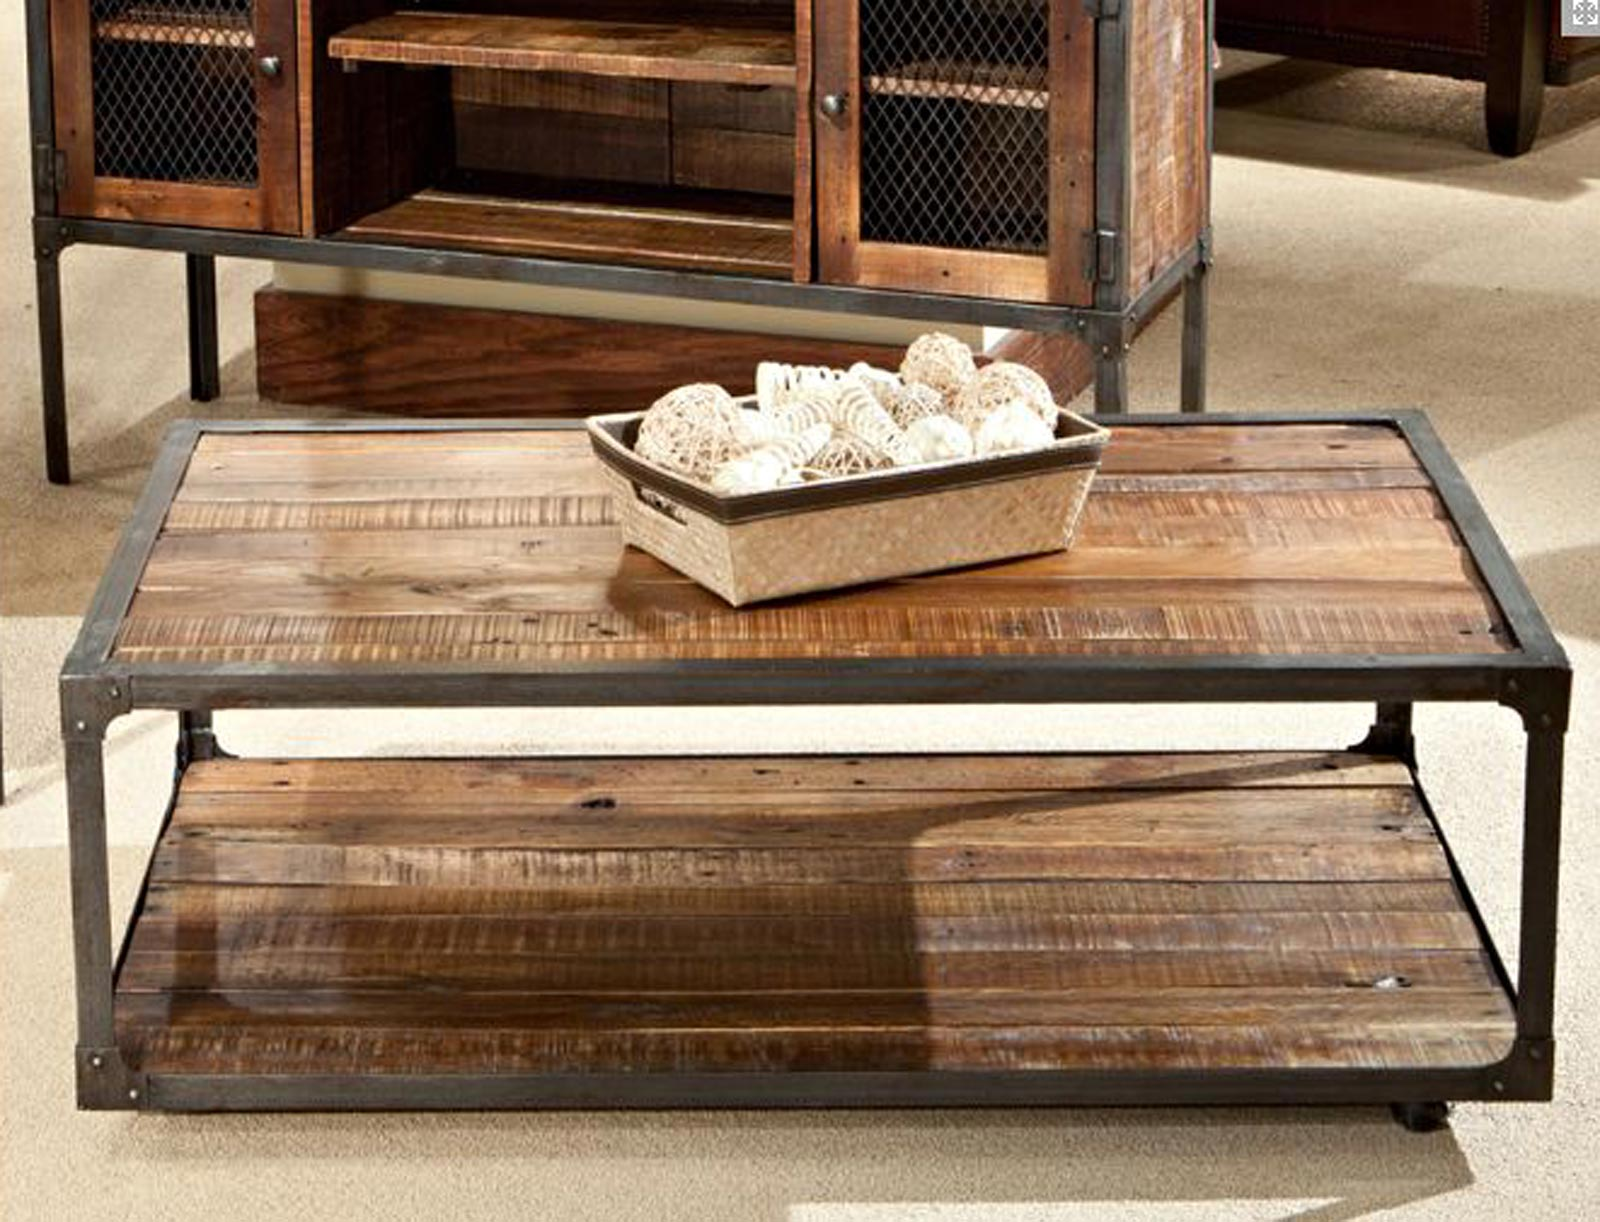 Rustic Industrial Coffee Table Reclaimed Home Industrial Rustic Industrial Coffee Table (View 7 of 10)